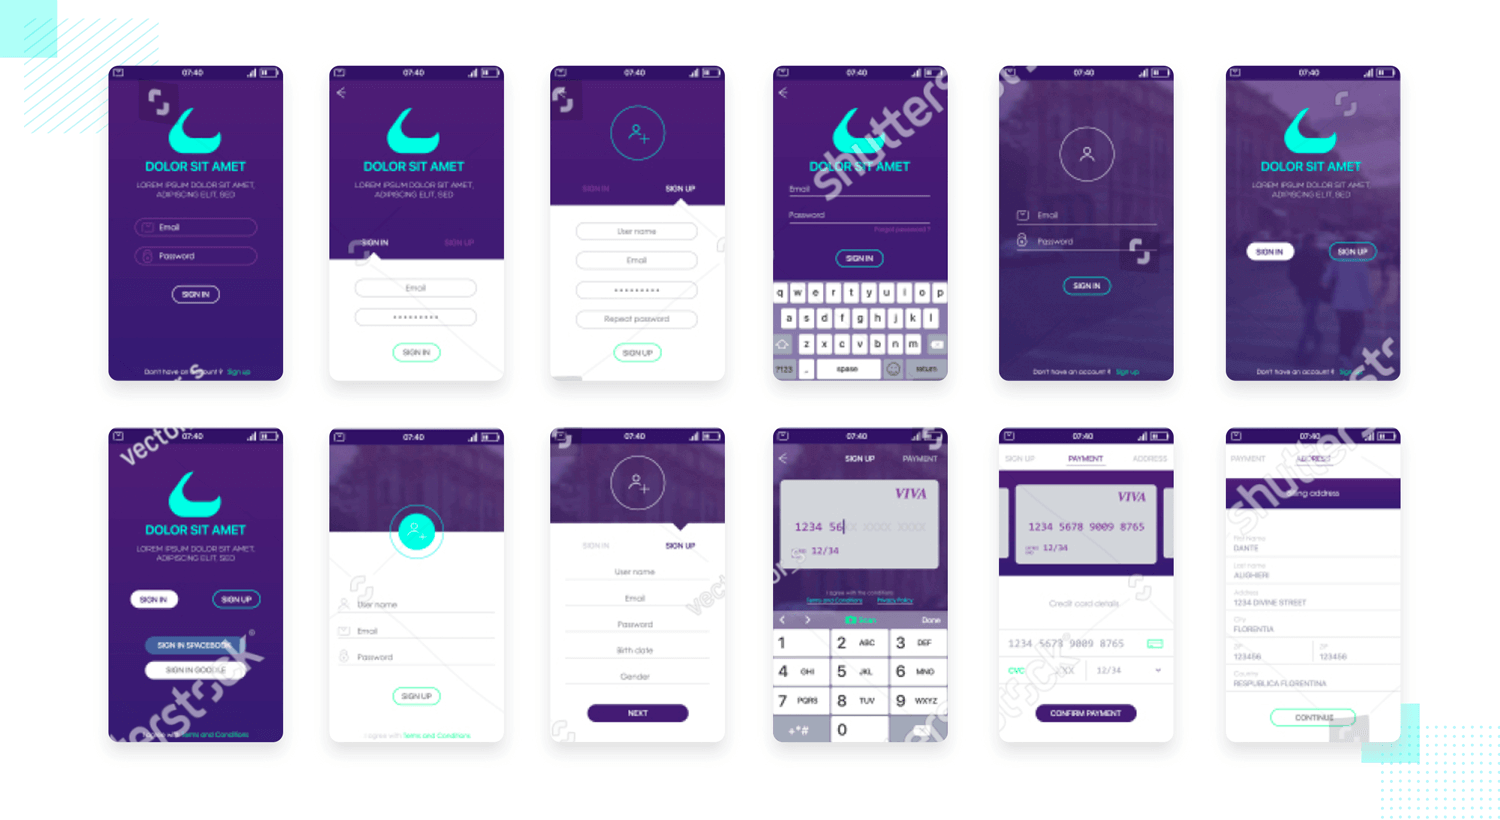 mobile app UI mockup available for free download